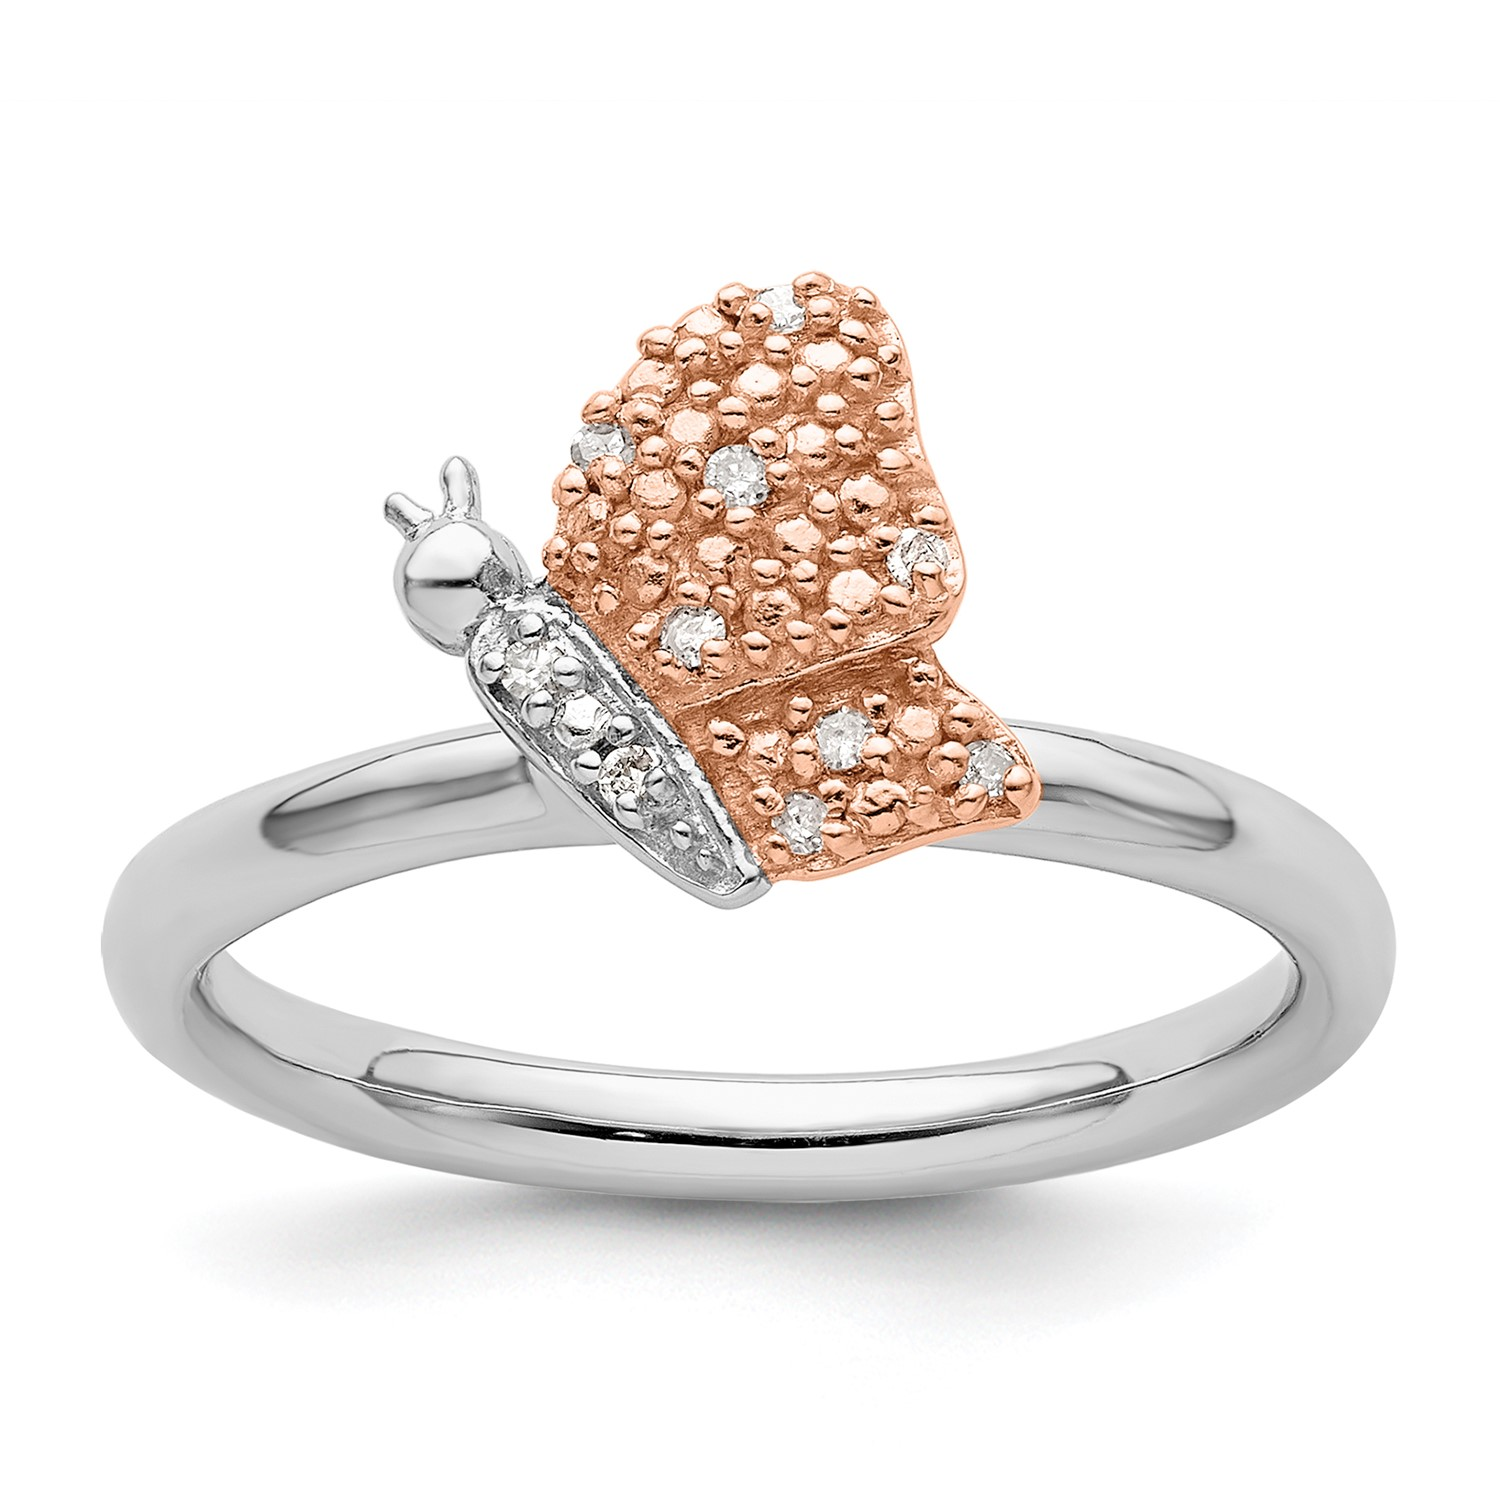 6efdf44c72813 Details about Sterling Silver/Rose Gold-plated Stackable Expressions  Diamond Butterfly Ring